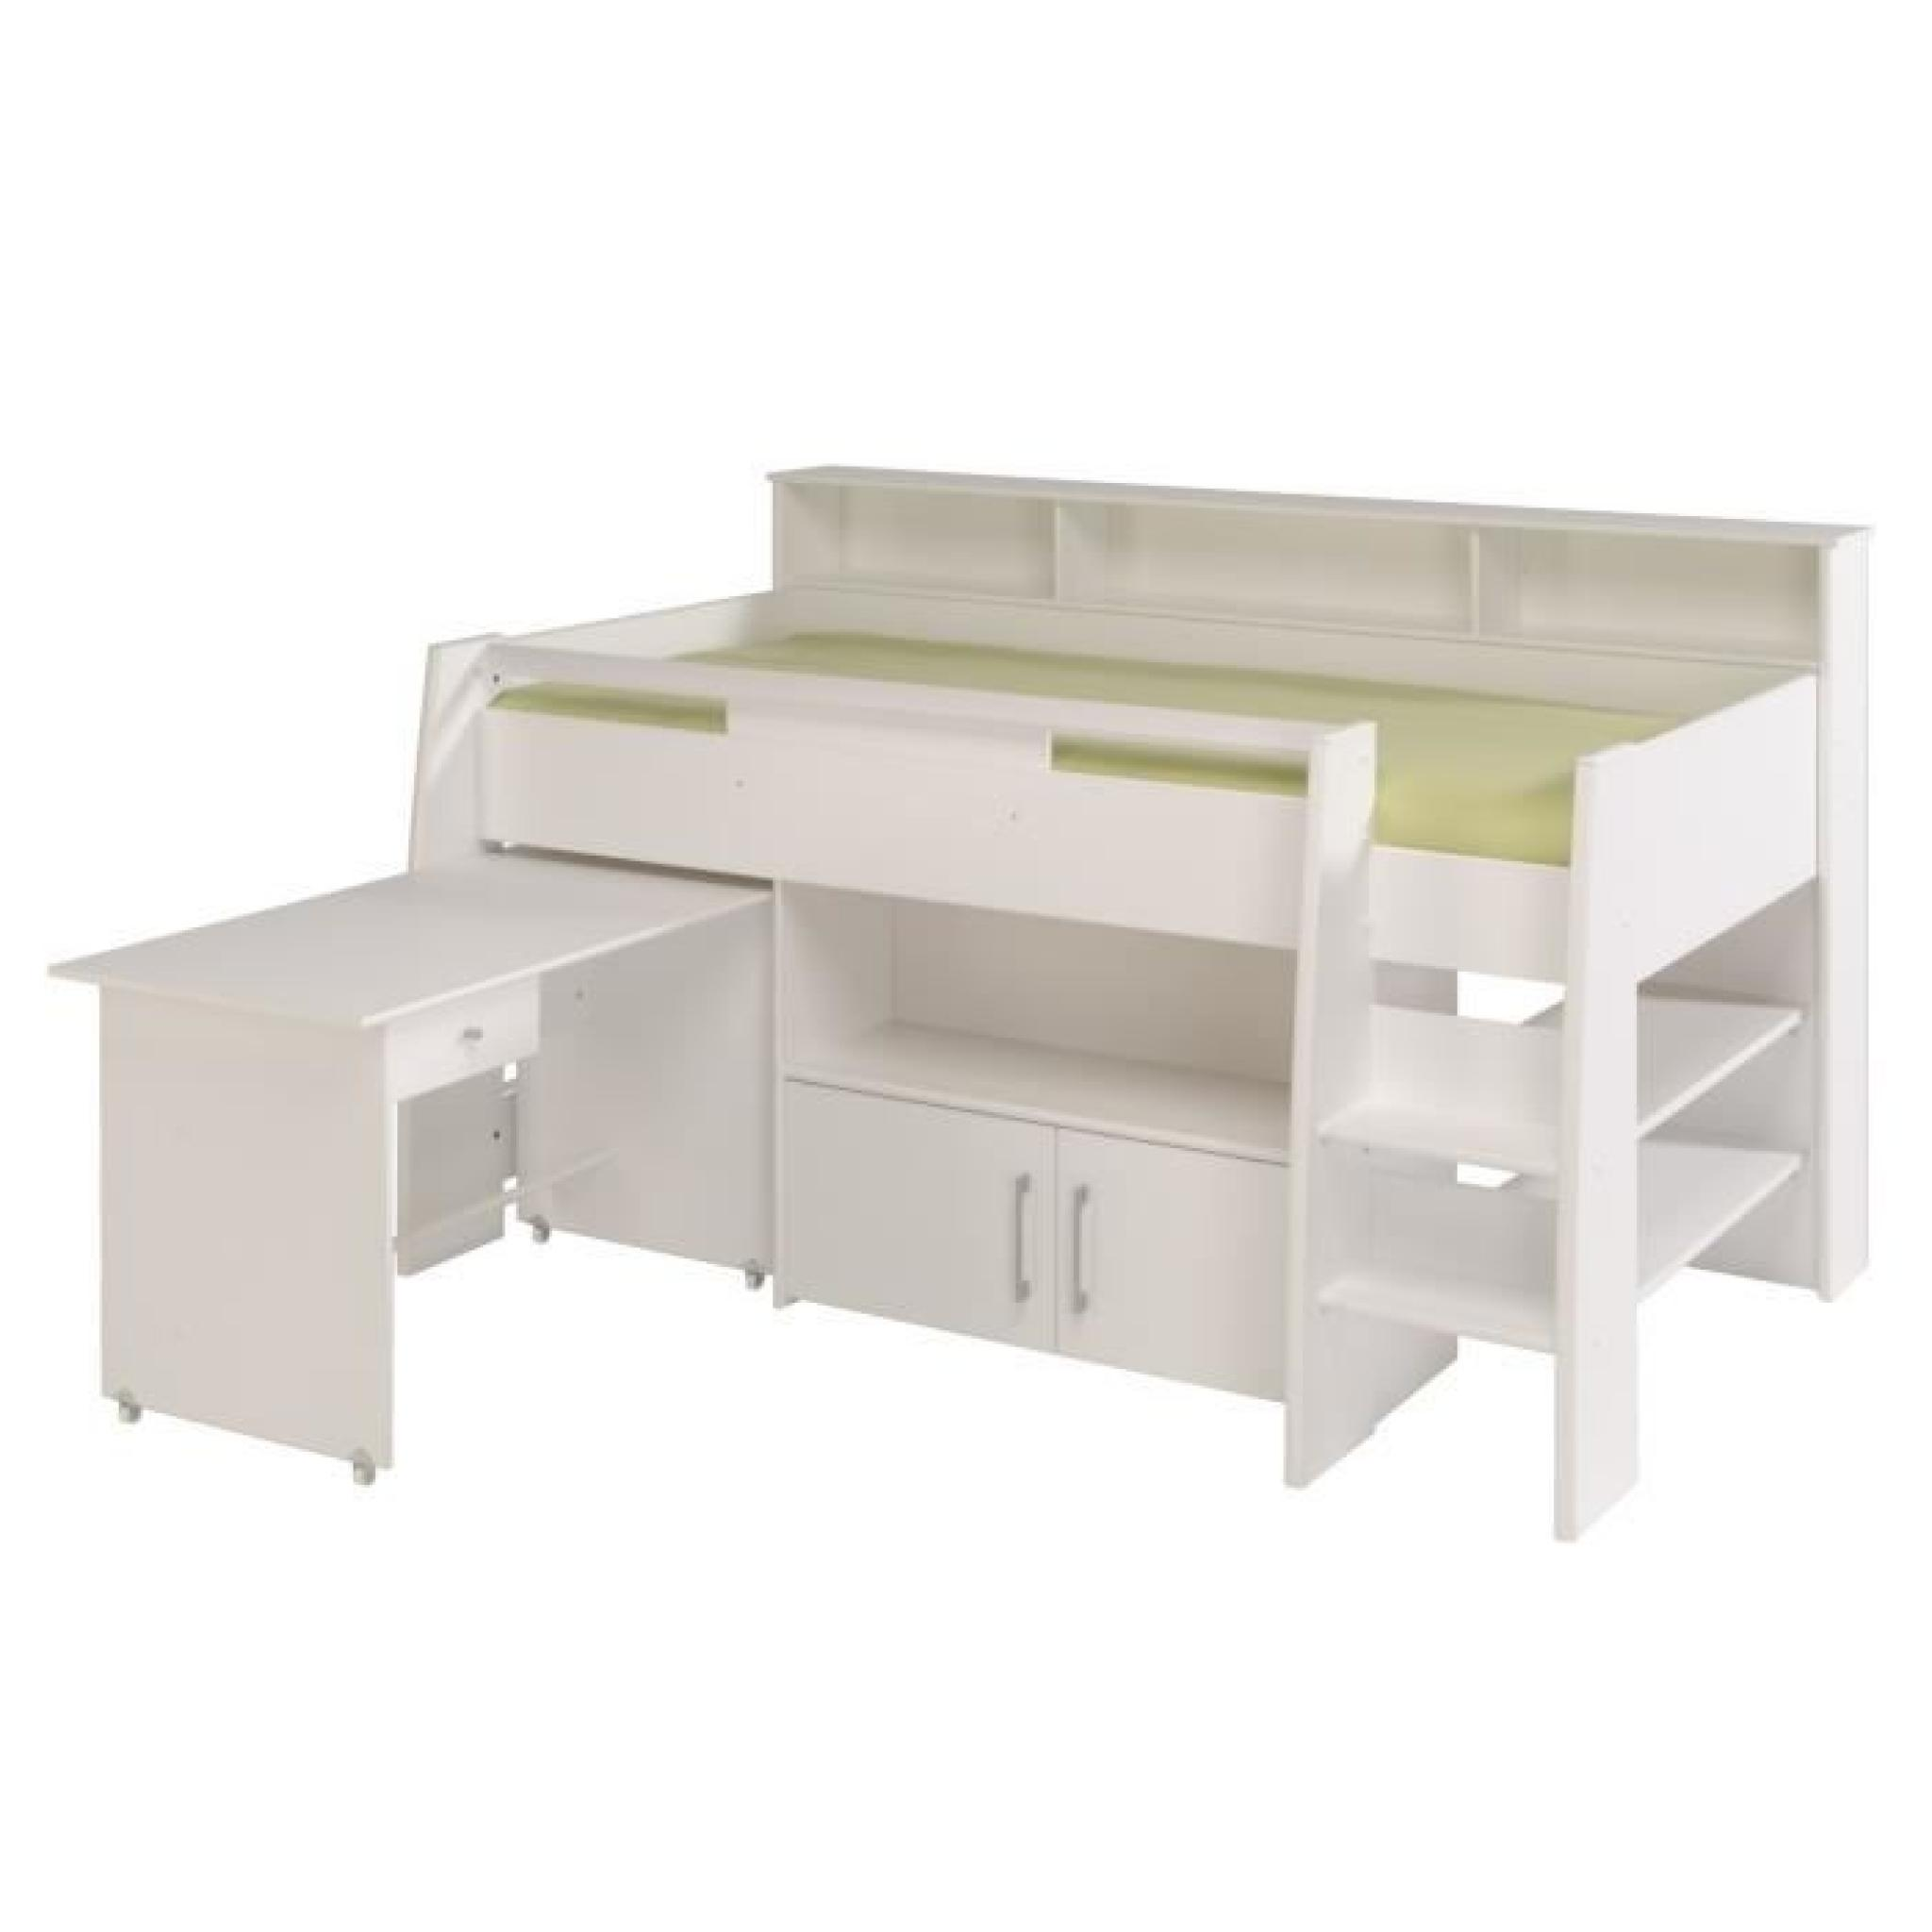 dave lit combin 90cm bureau rangement blanc achat. Black Bedroom Furniture Sets. Home Design Ideas